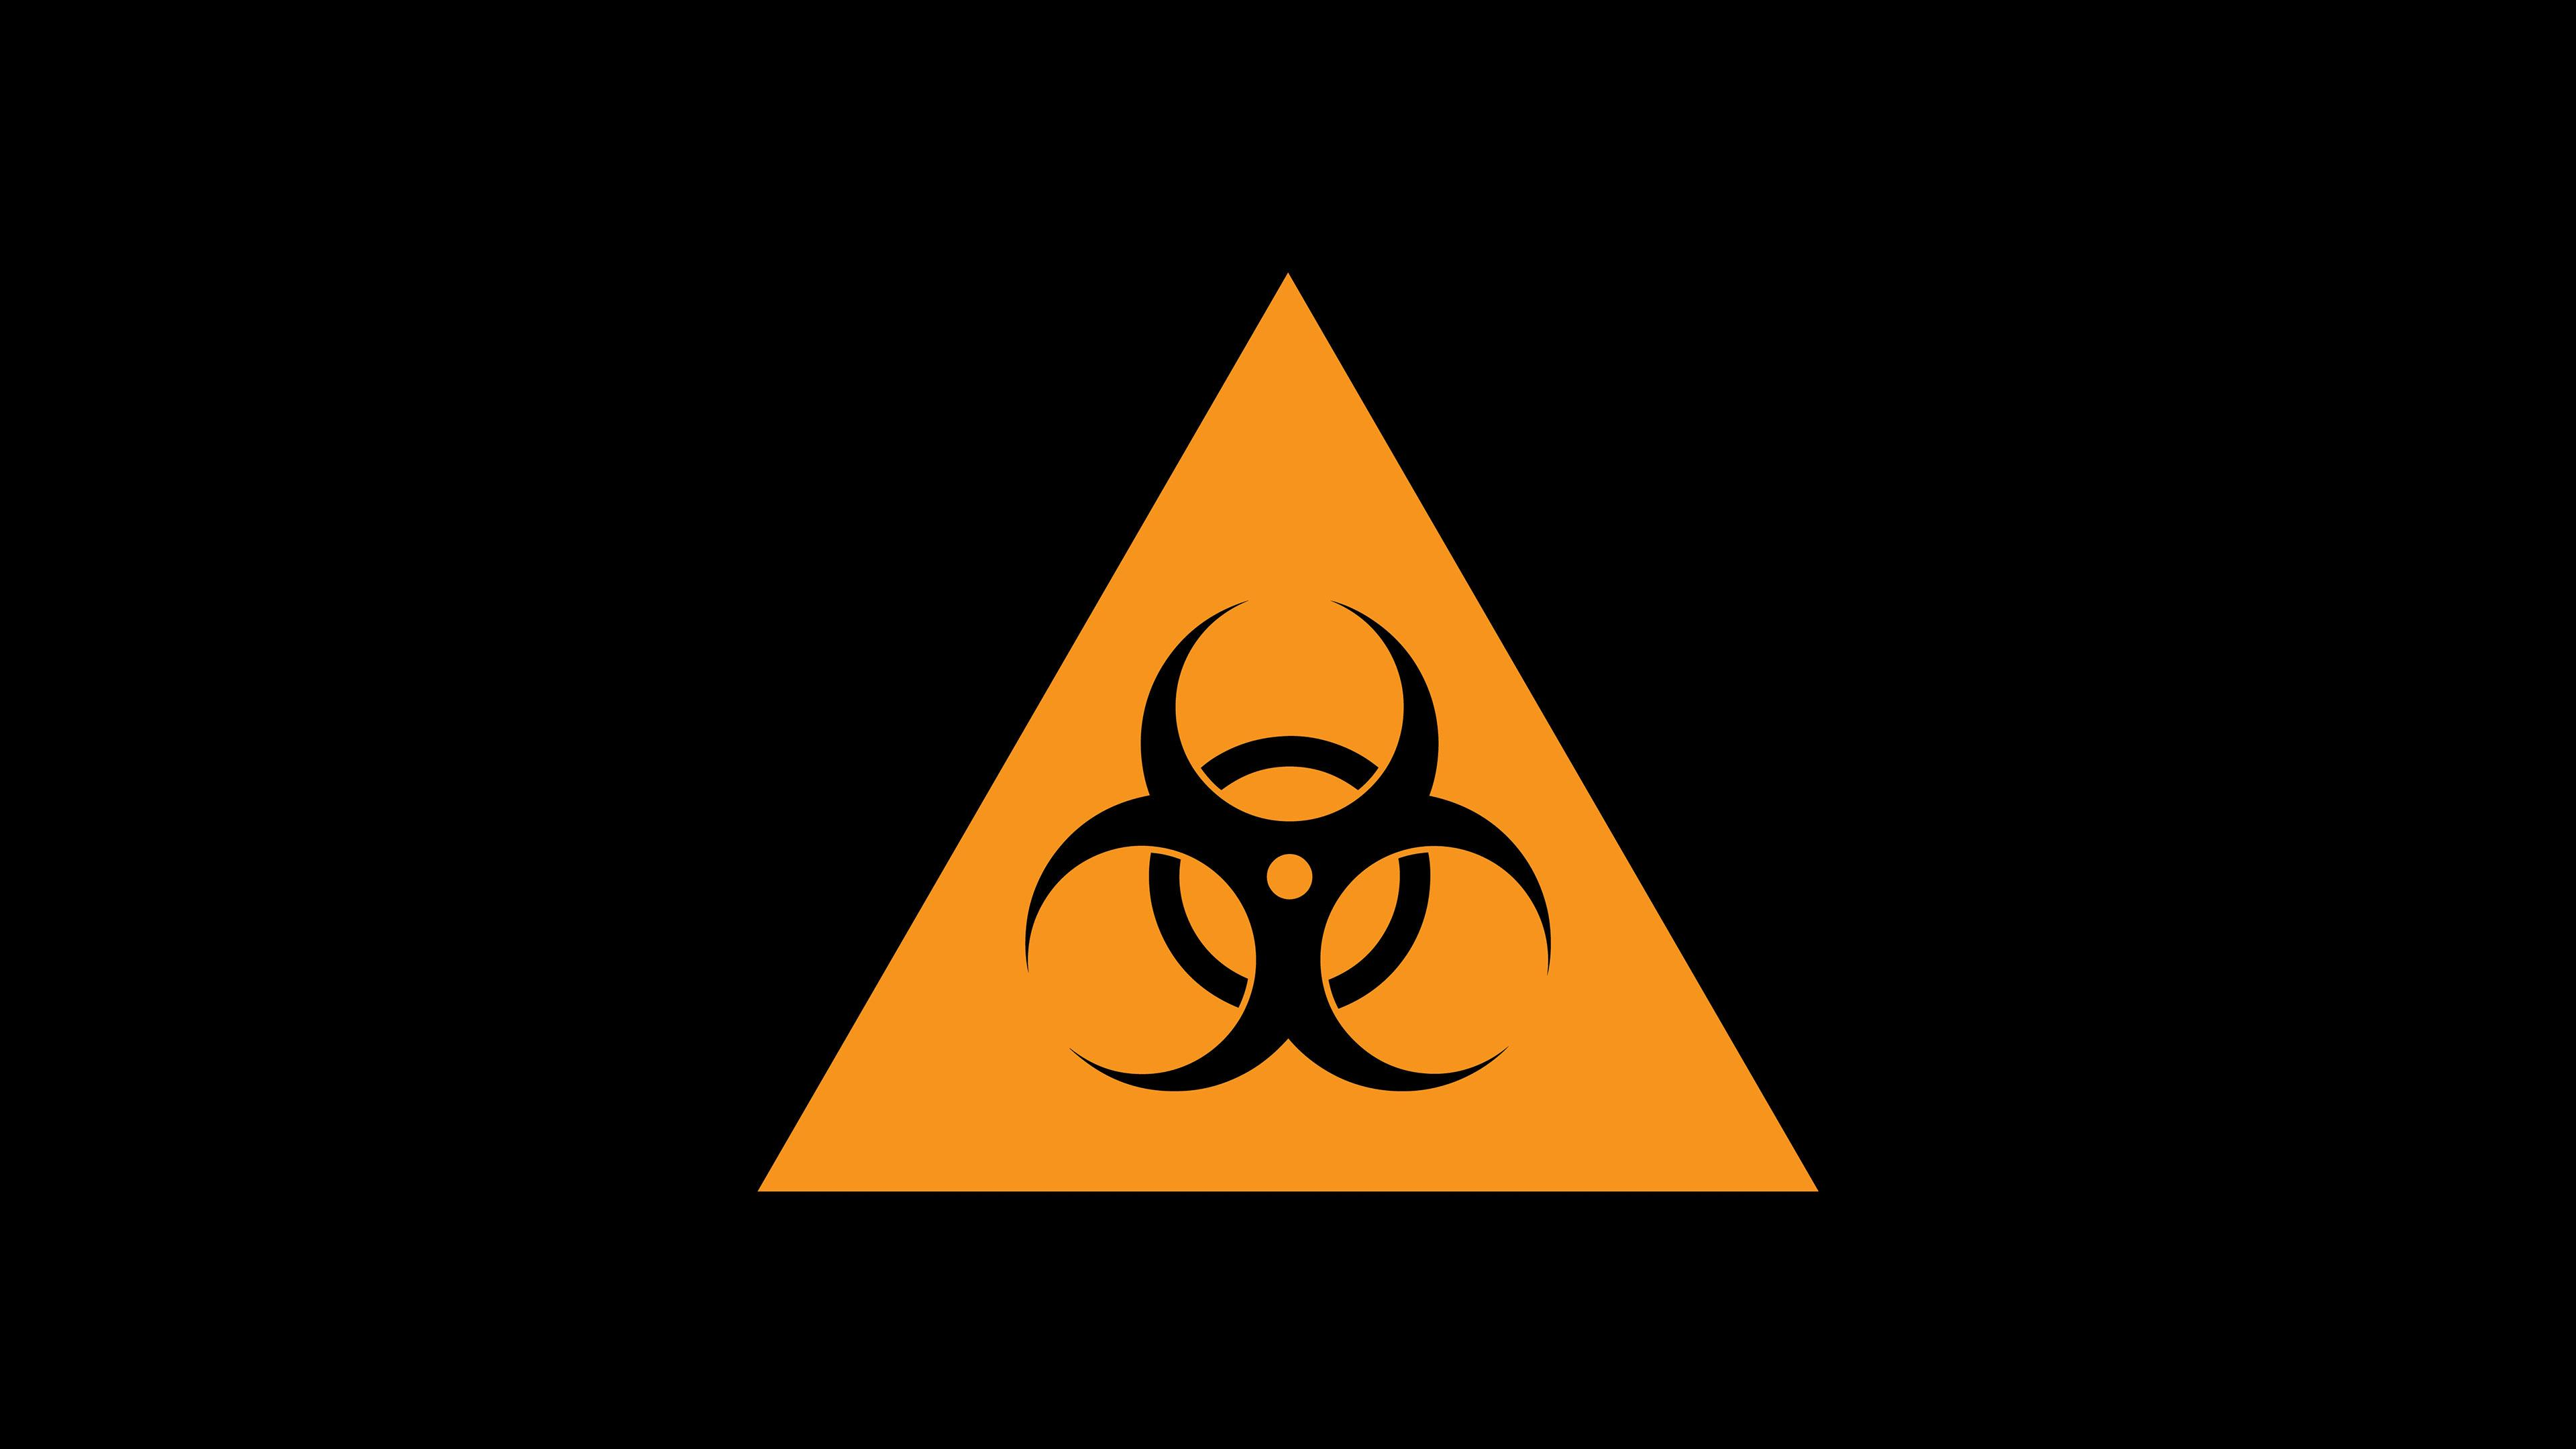 Good Night 3d Wallpapers Free Download Hd Biohazard Sign In A Triangle Wallpaper Download Free